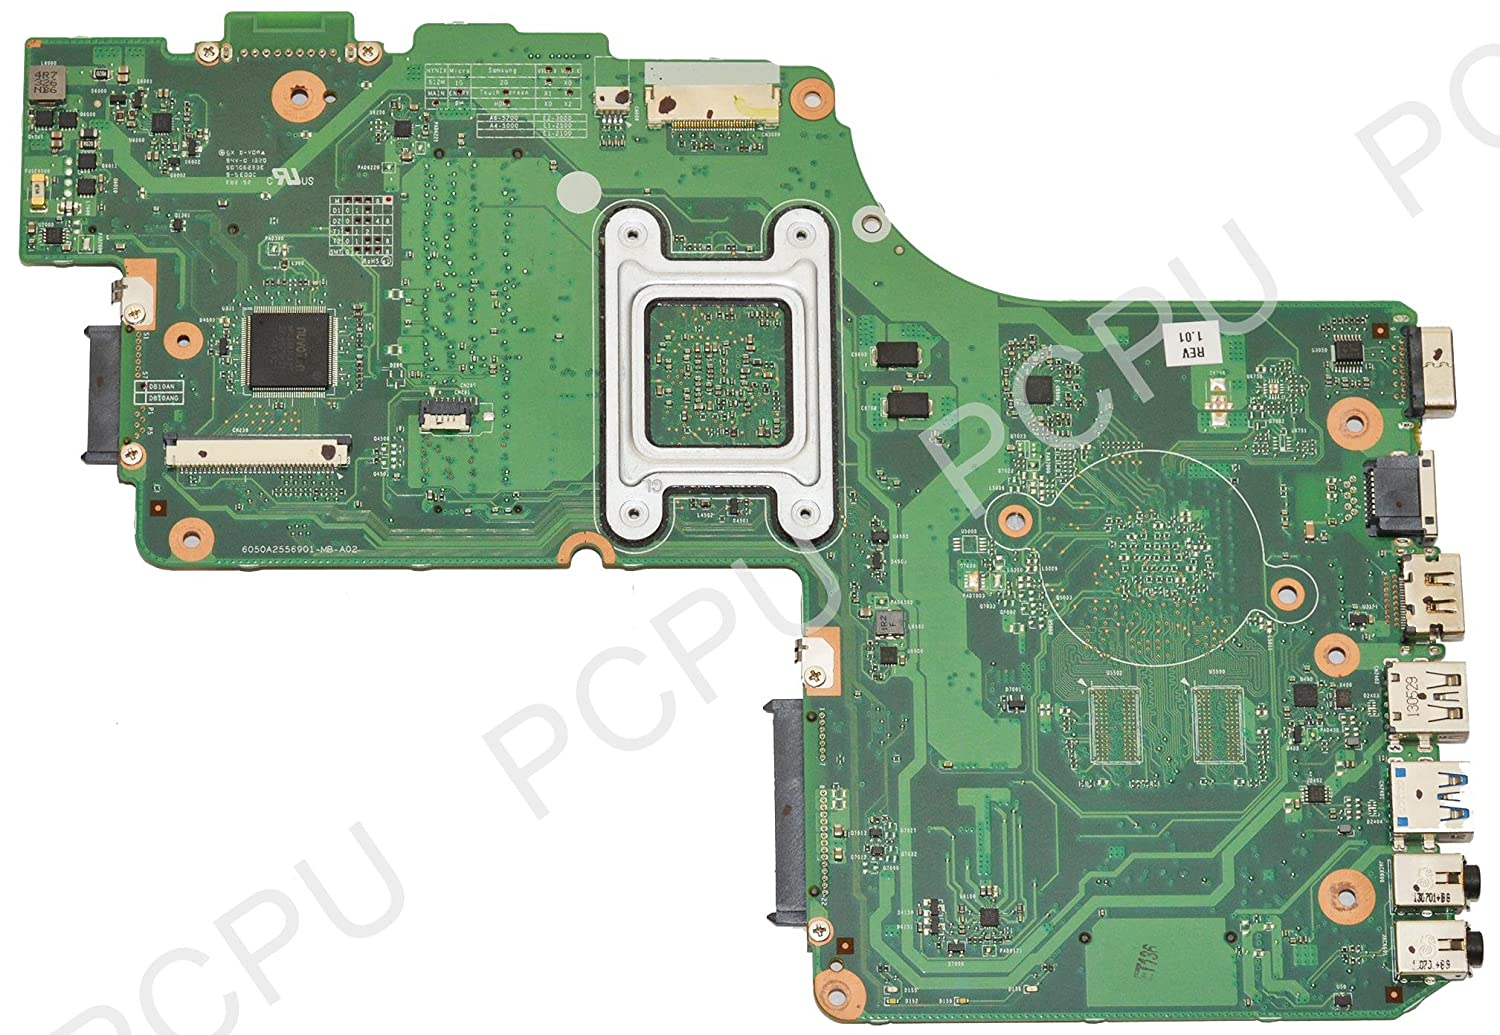 V000325090 Toshiba Satellite C55D Laptop Motherboard w// AMD A4-5000 1.5GHz CPU